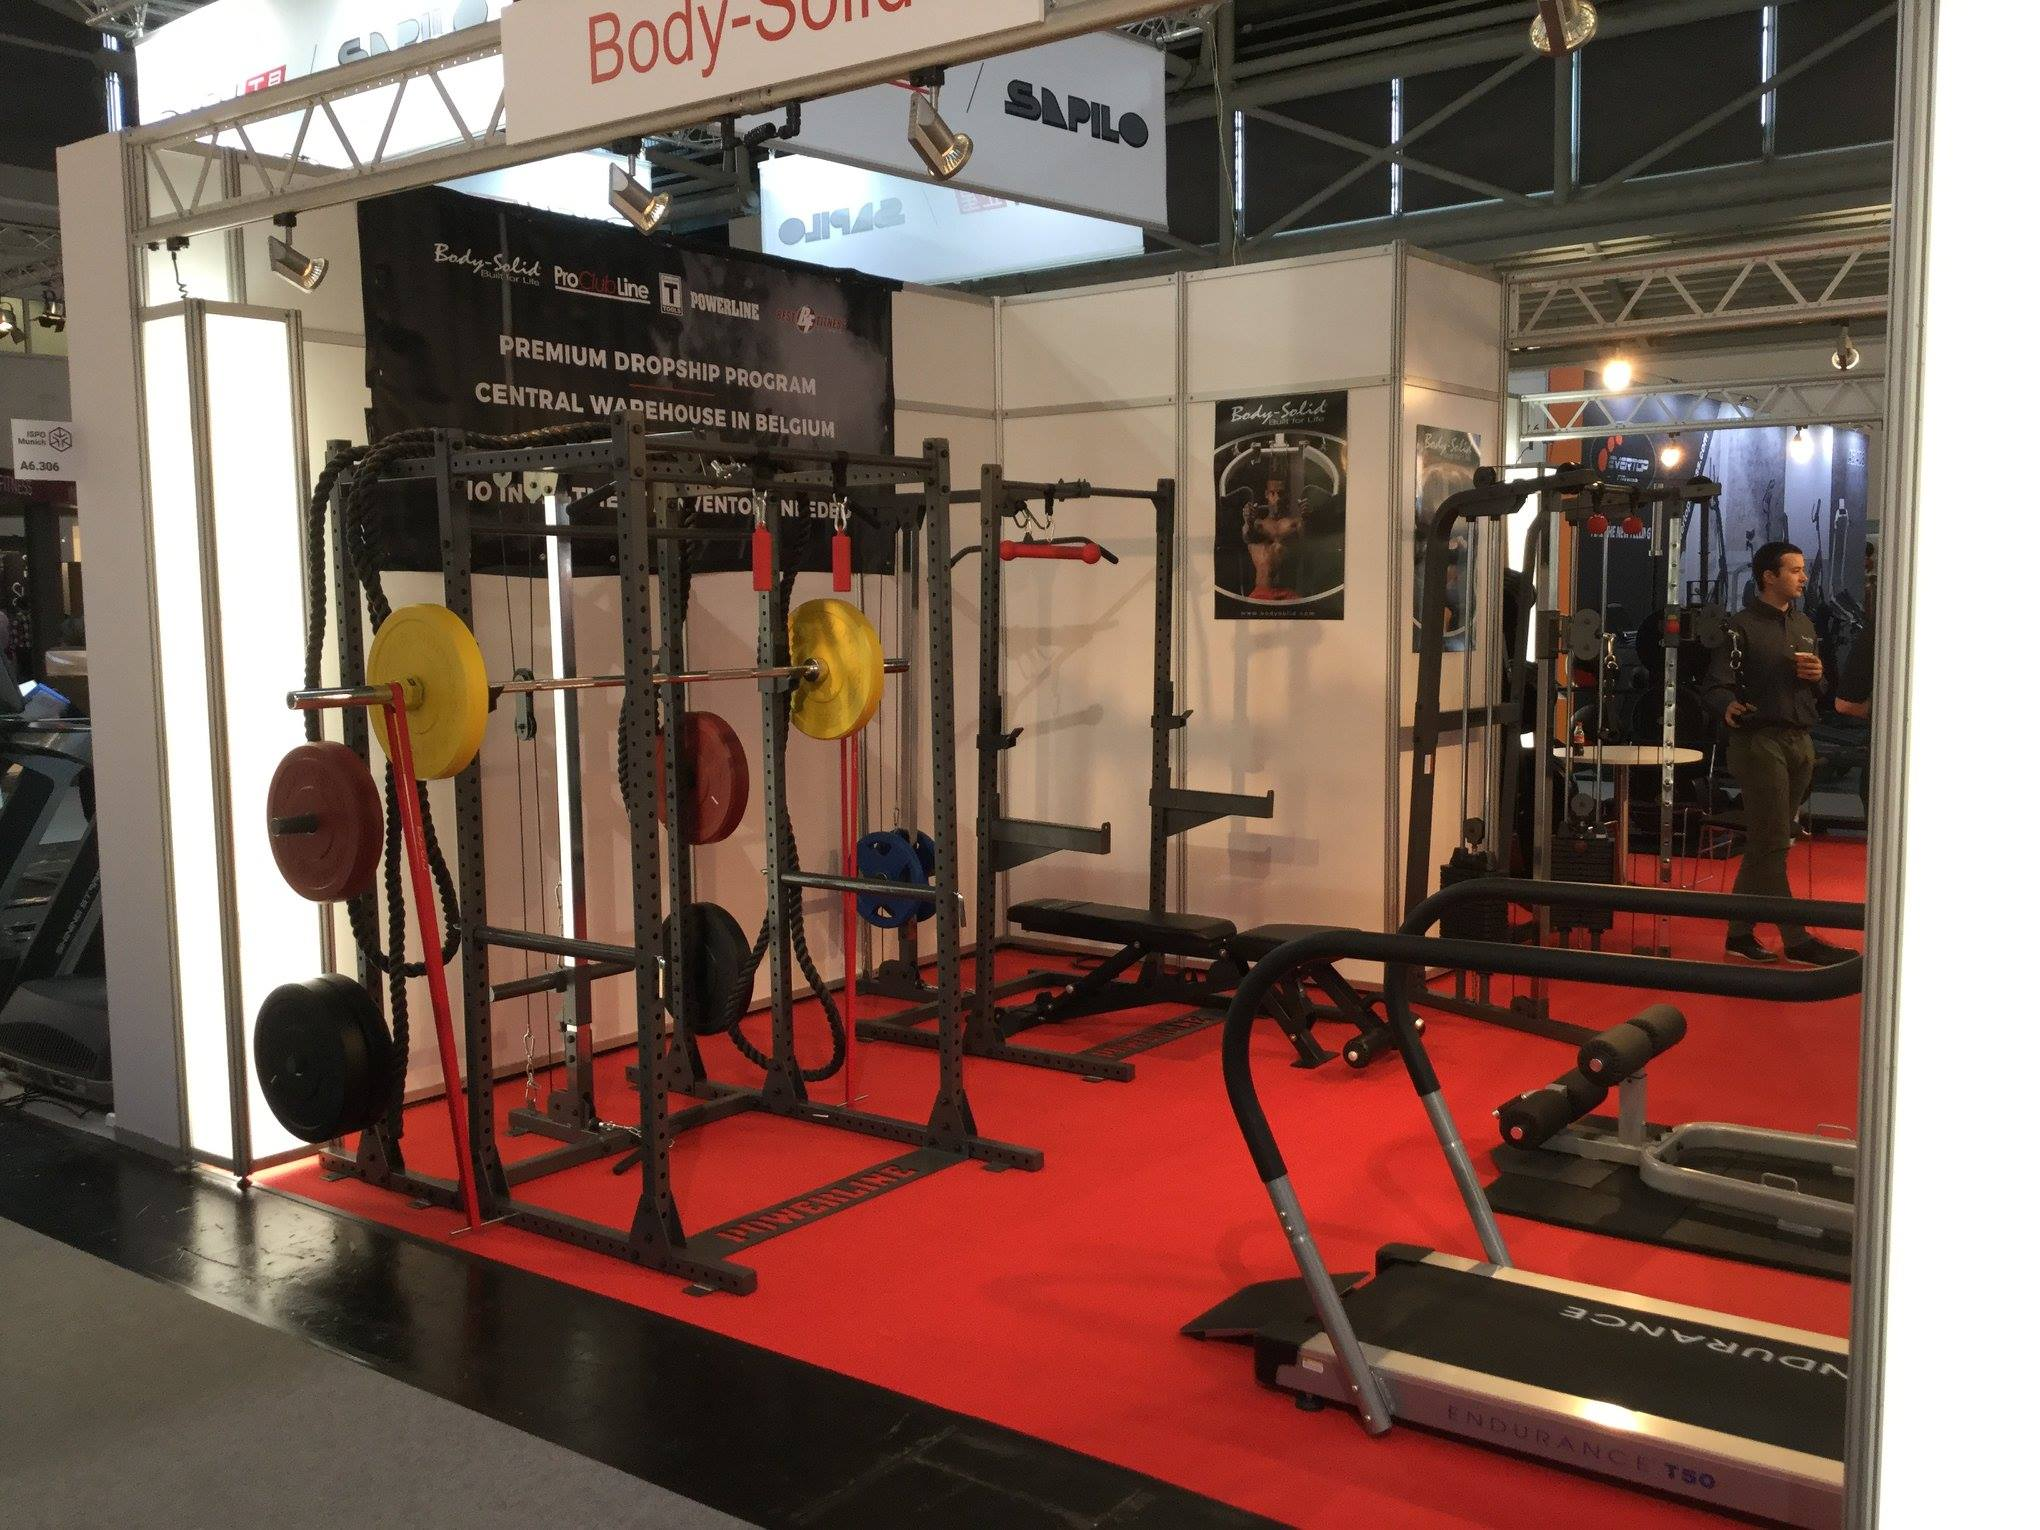 Body-Solid at ISPO 2019 | Body-Solid, Inc (Blog)